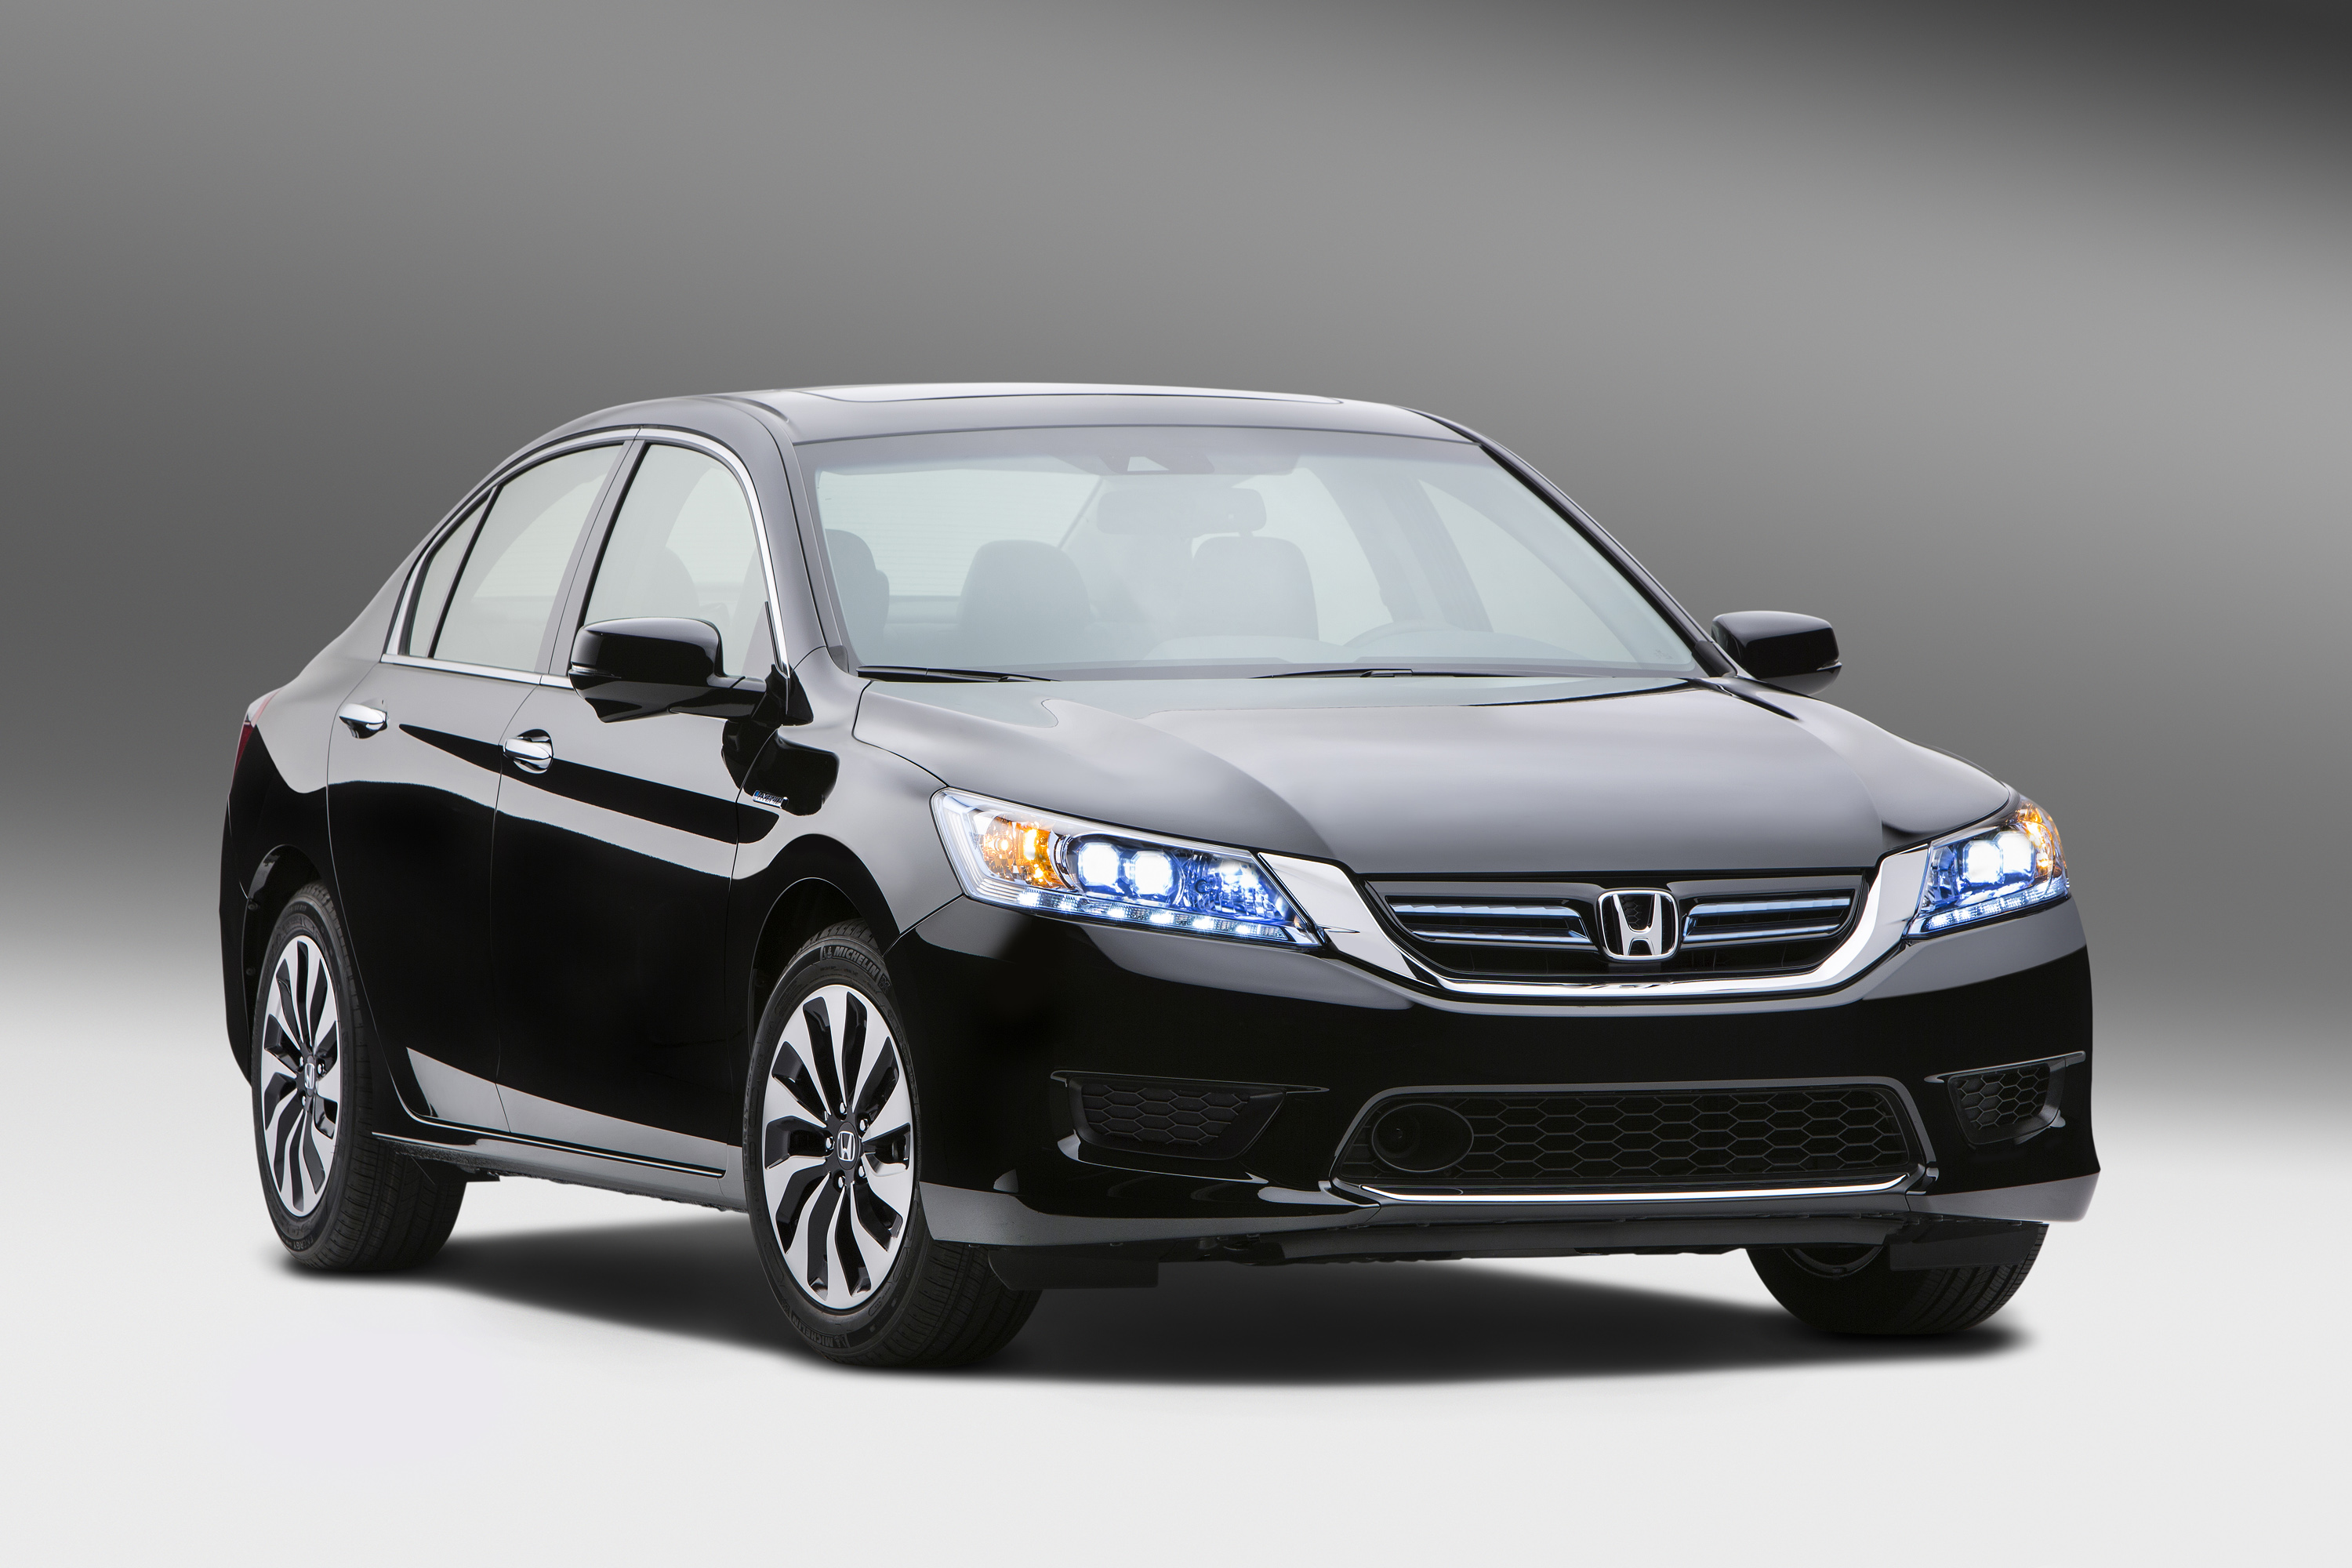 2014 honda accord hybrid arrives this fall rated at 47 mpg. Black Bedroom Furniture Sets. Home Design Ideas